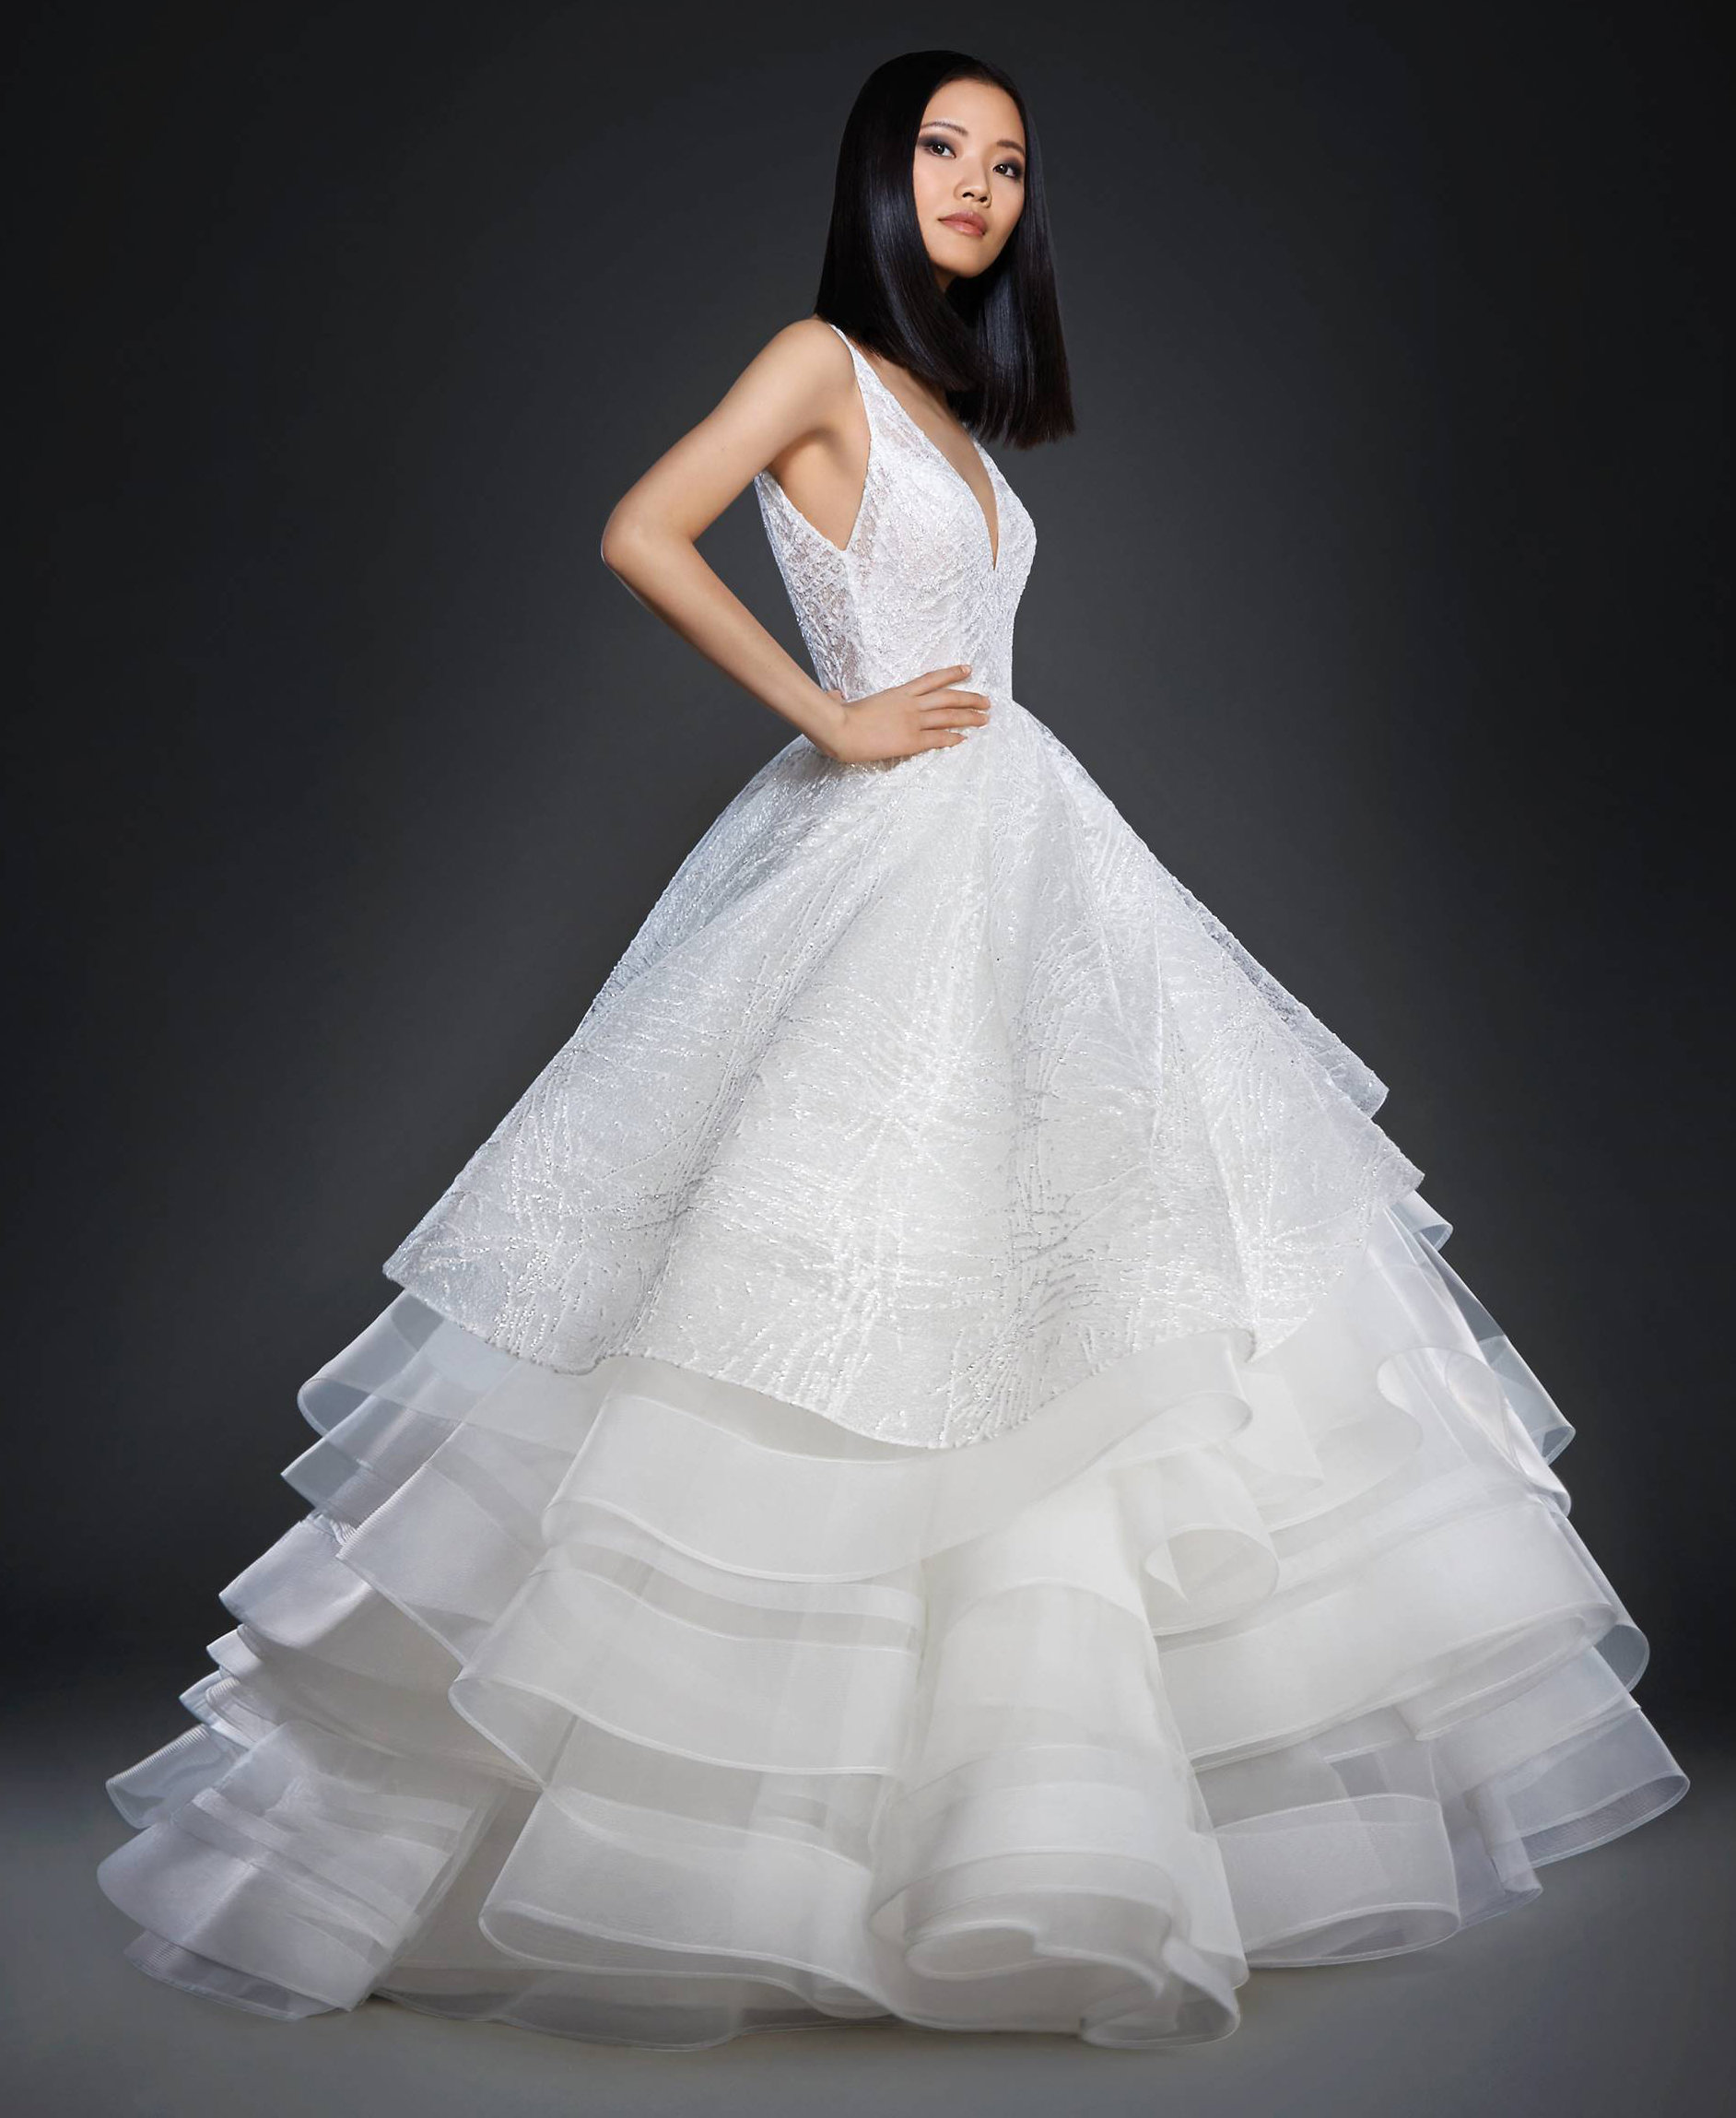 Wedding Dresess: Romantic Ball Gown Wedding Dress